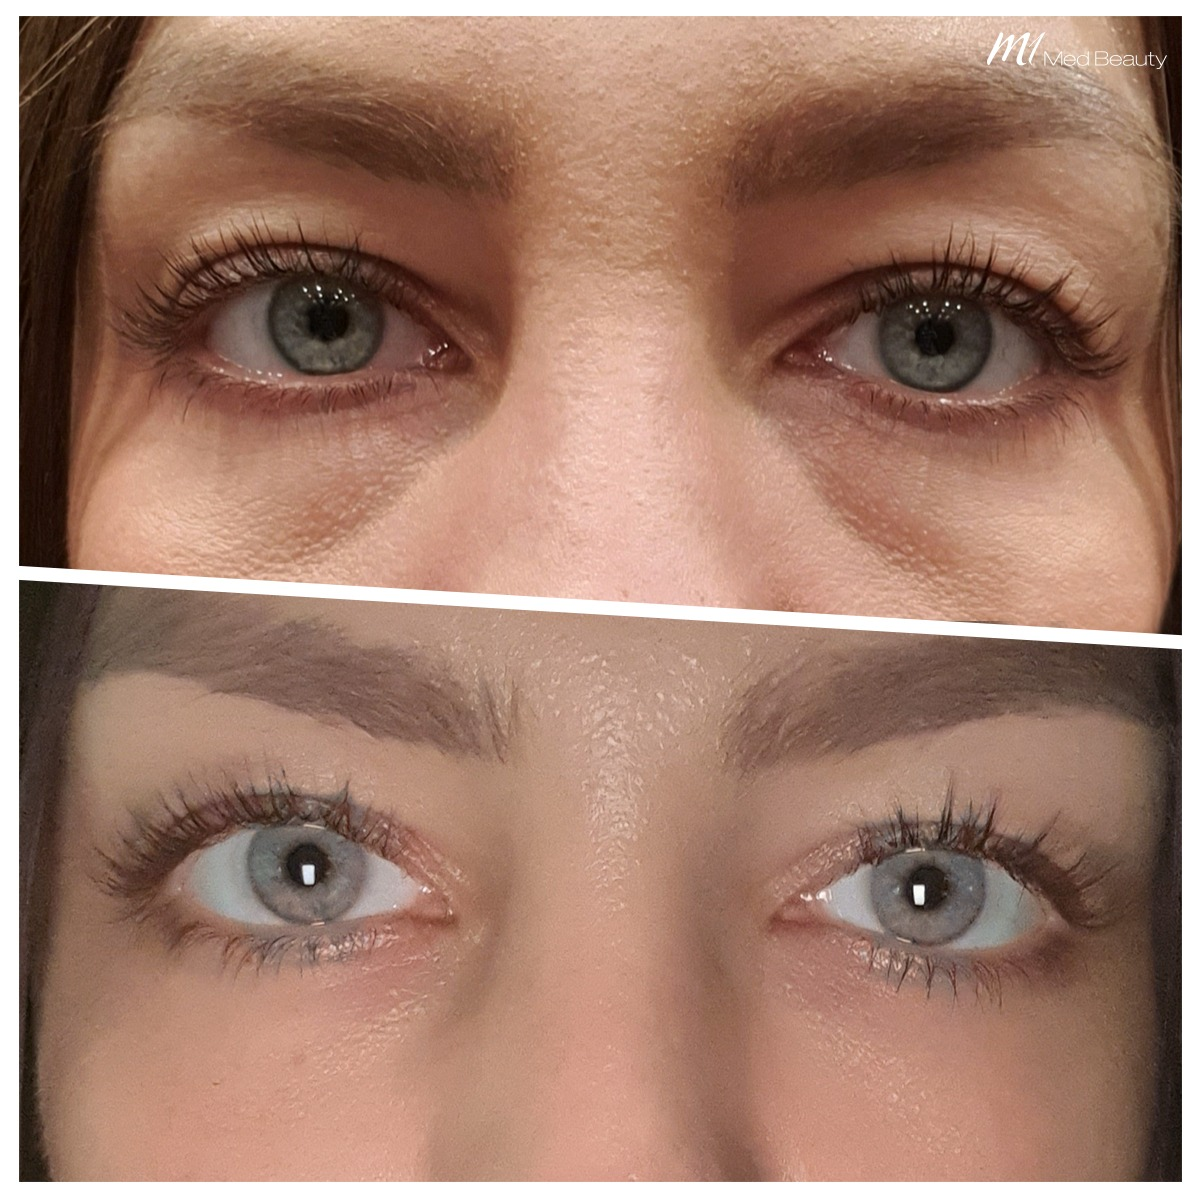 Tear trough treatment at M1 Med Beauty before and after_02